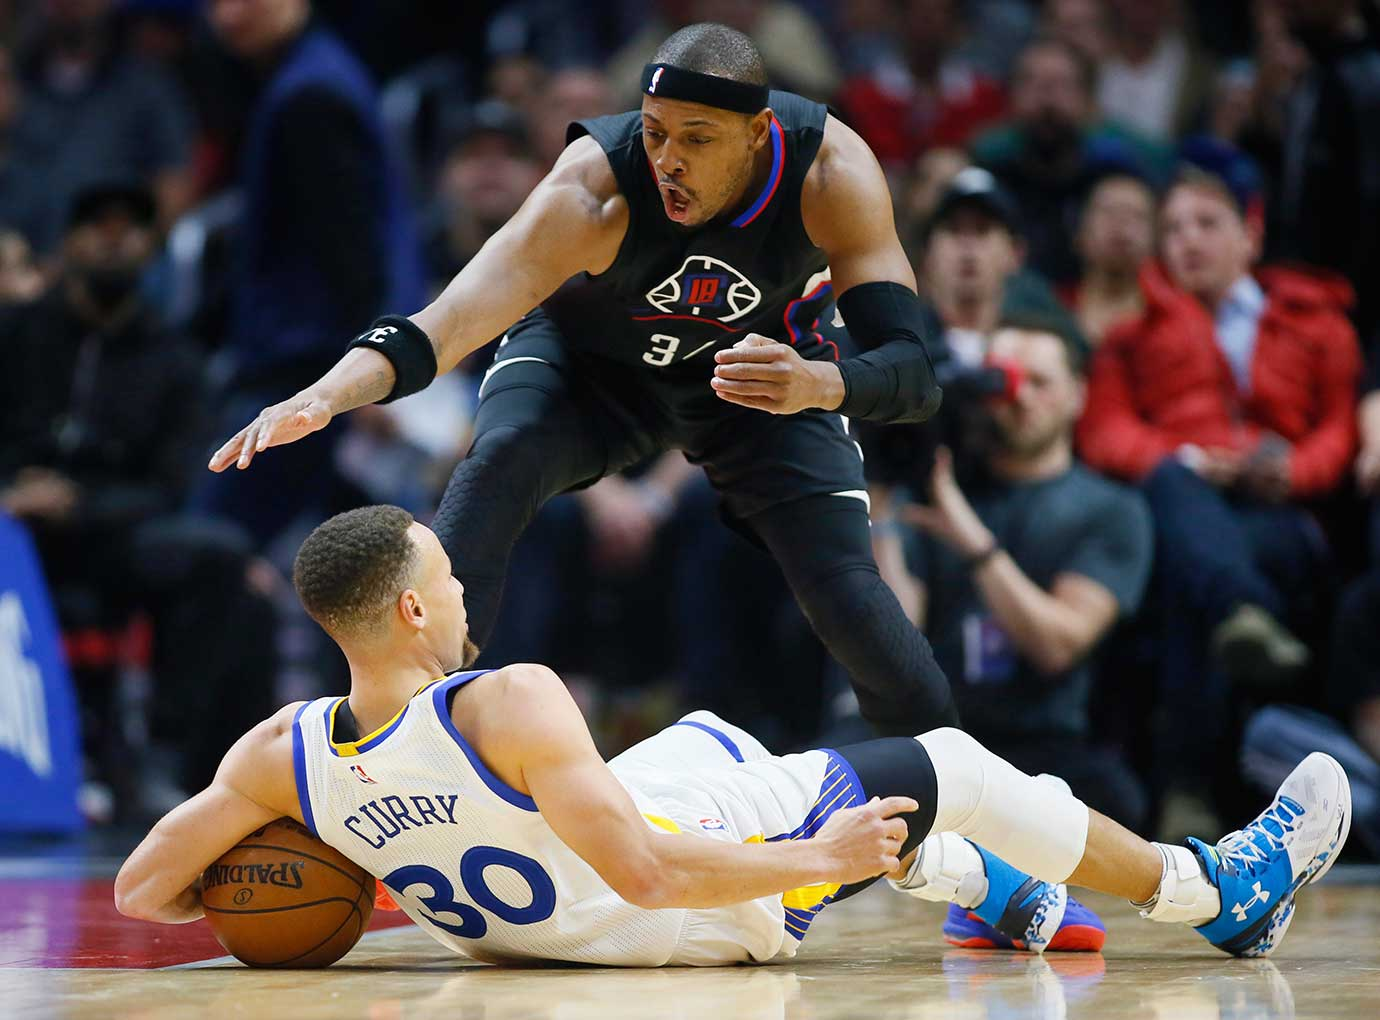 Paul Pierce gets set to dive for the ball after Steph Curry fell while dribbling behind his back. Pierce was called for a foul.